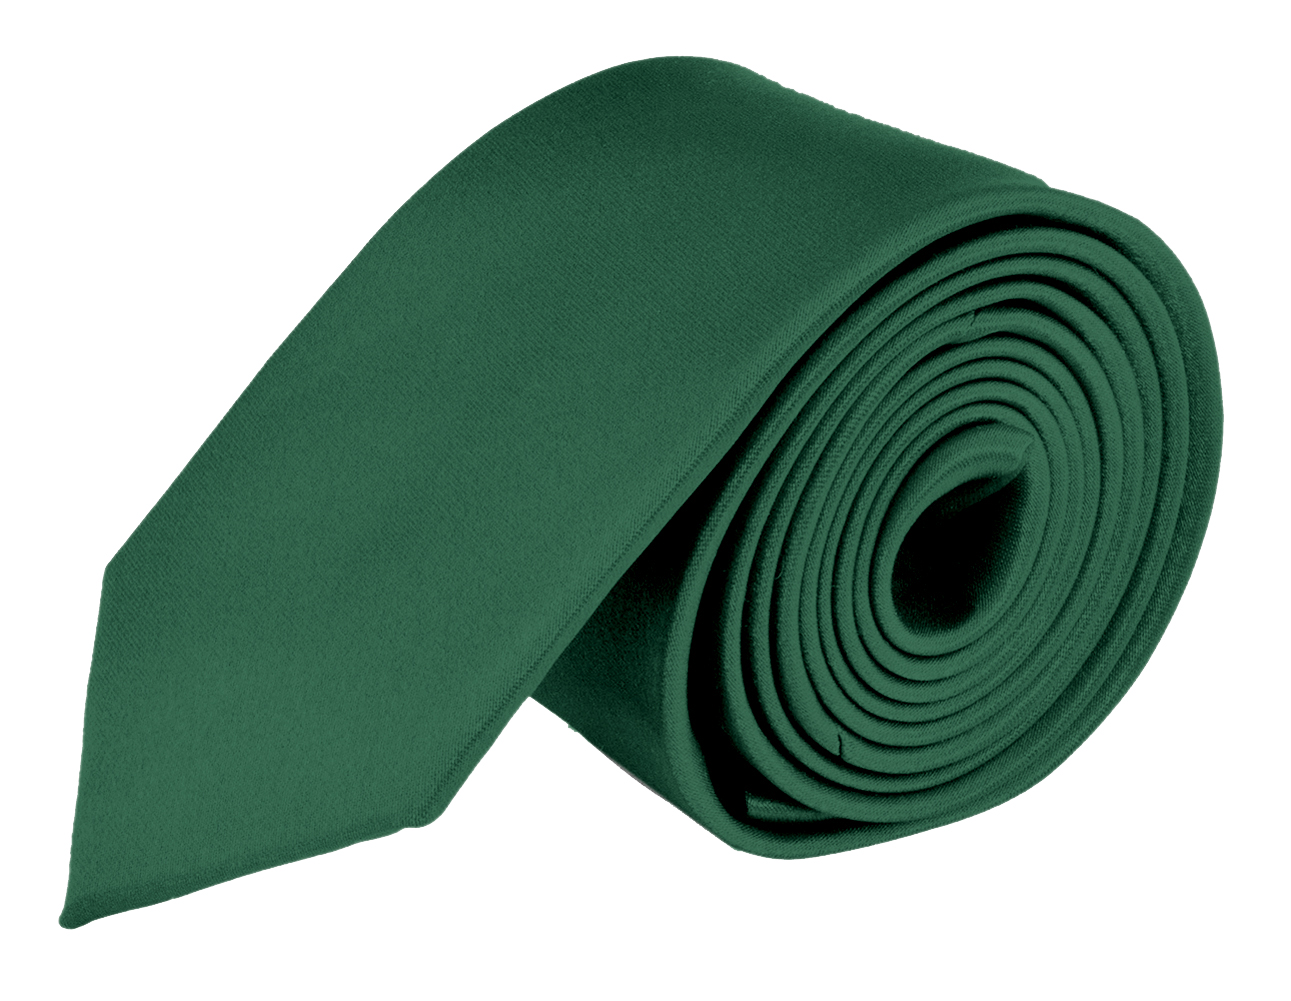 MDR Mens Ties Solid Satin Tie Pure Solid Color Necktie - Hunter Green 2.75 inch